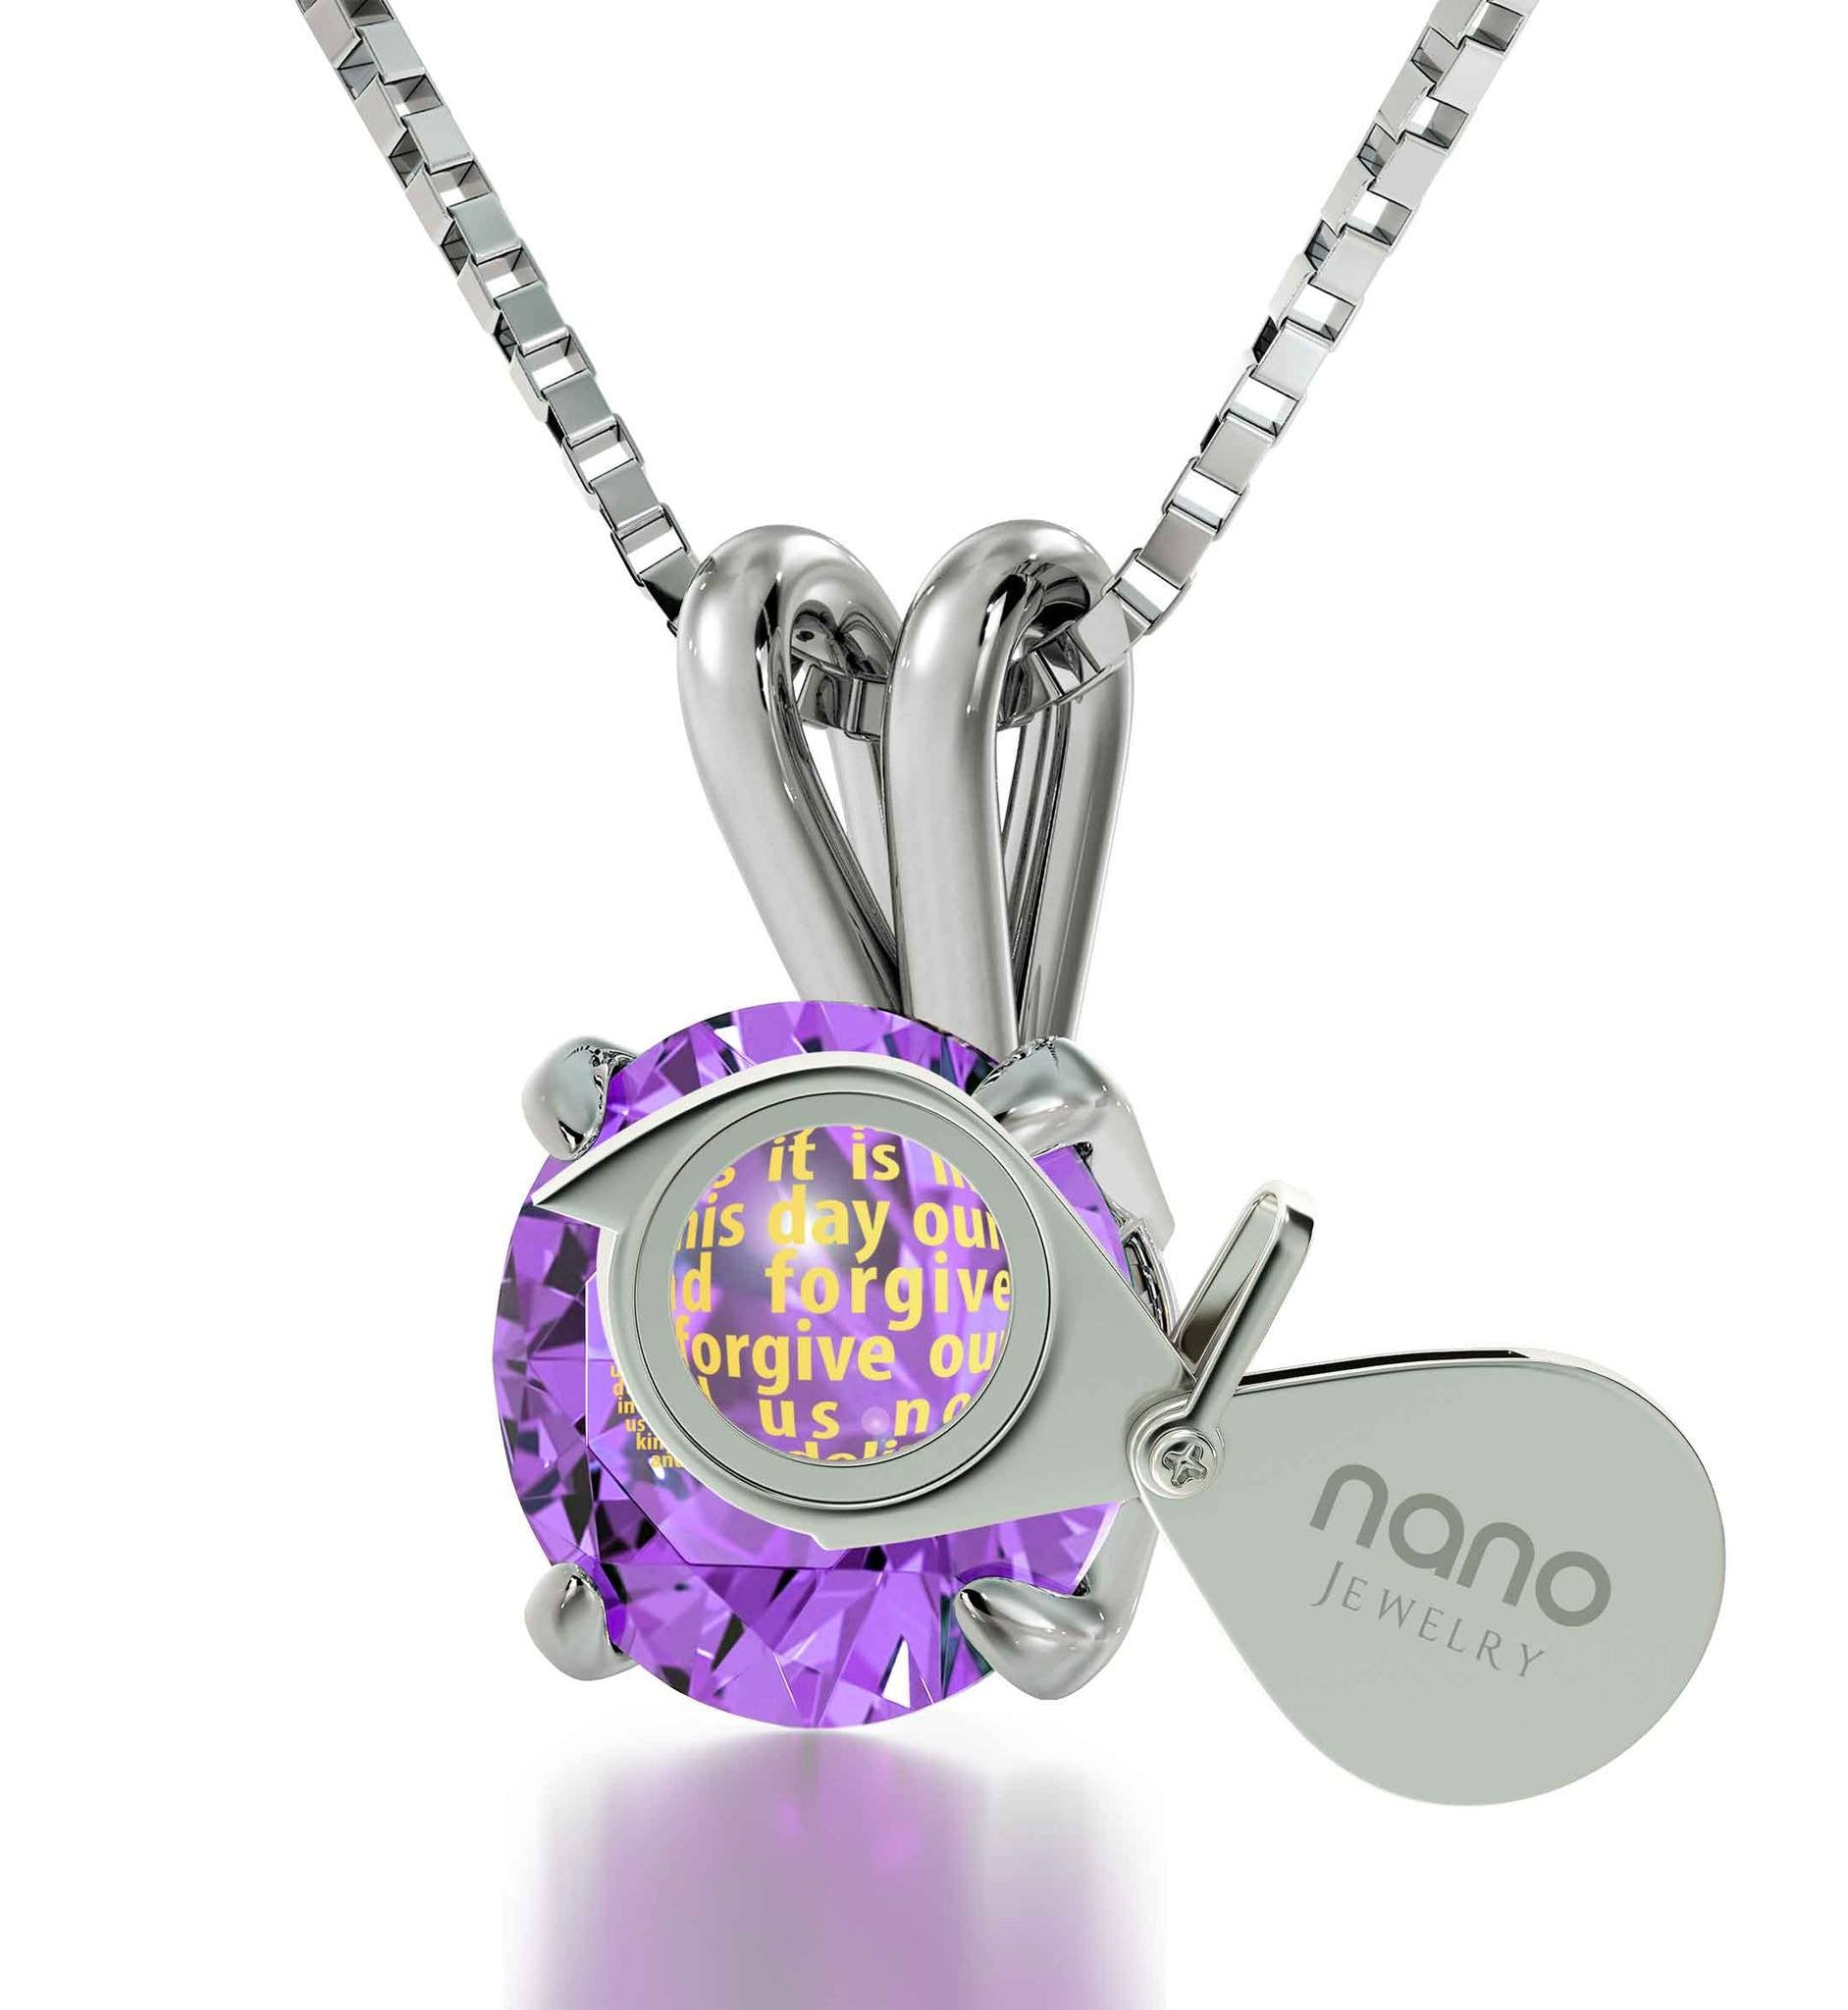 23 Psalm Kjv, Christmas Ideas for Mum, Best Gift for Wife, Purple Jewelry, Nano